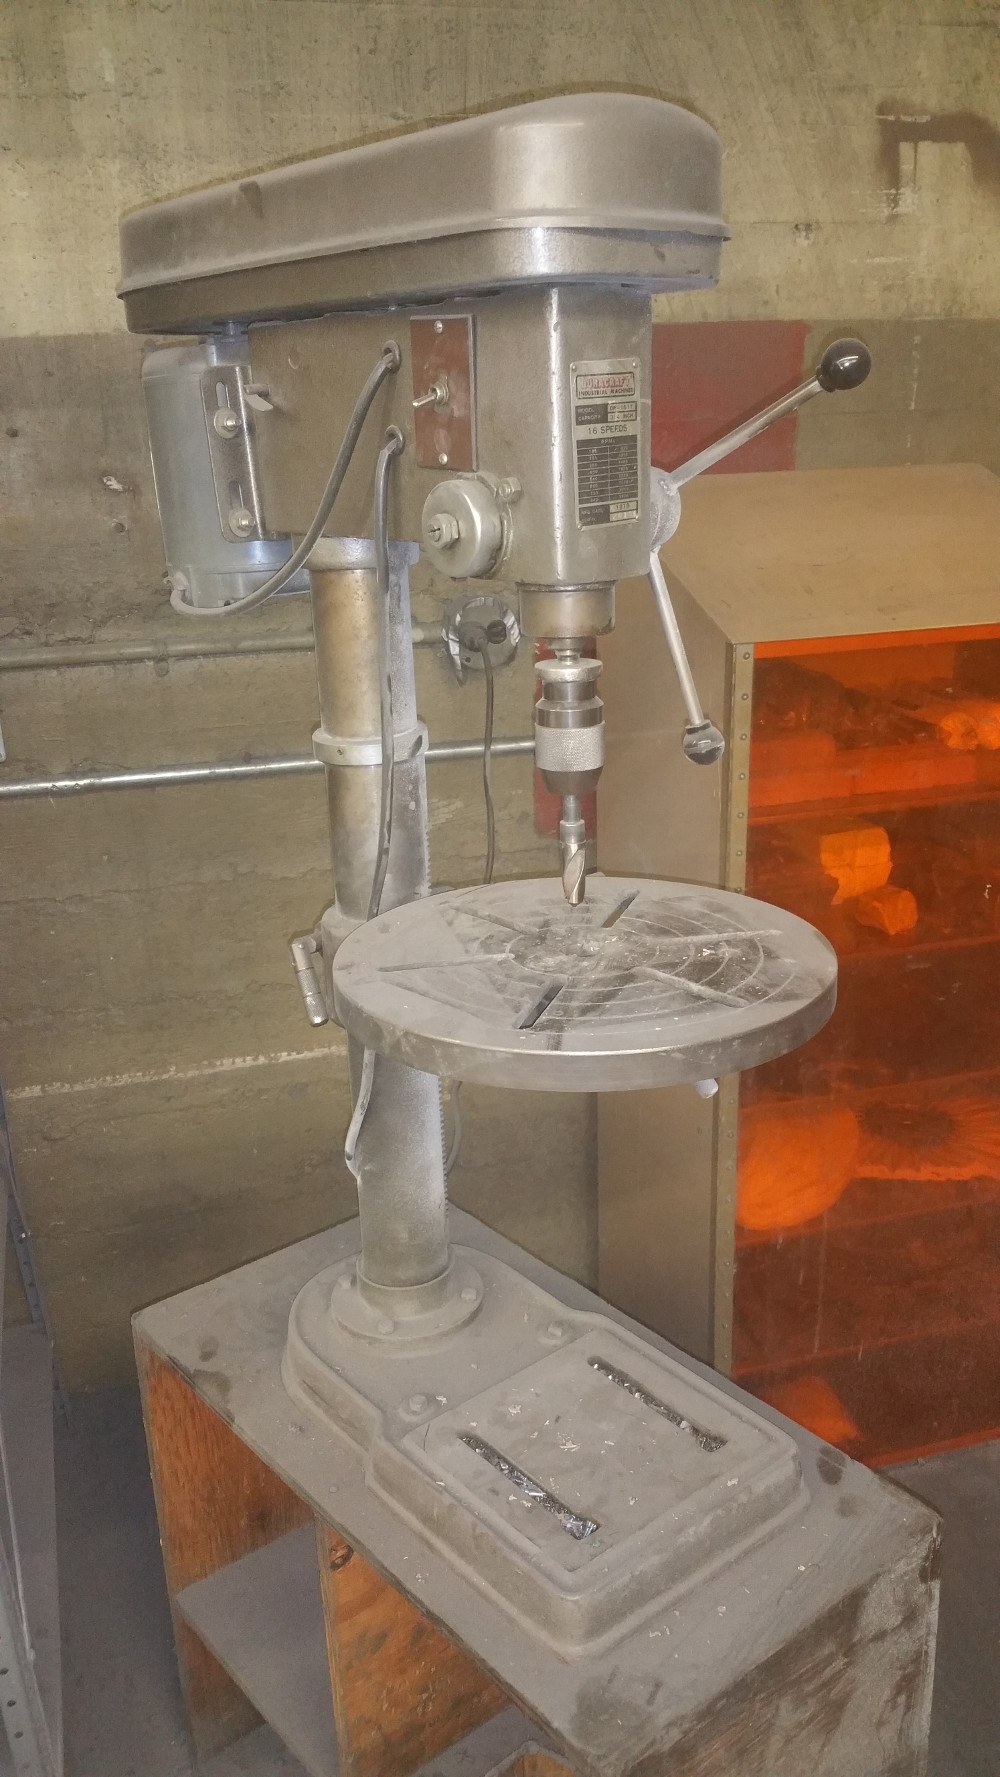 Drill Press Duracraft Model Dp 1617 Portland Or Sold